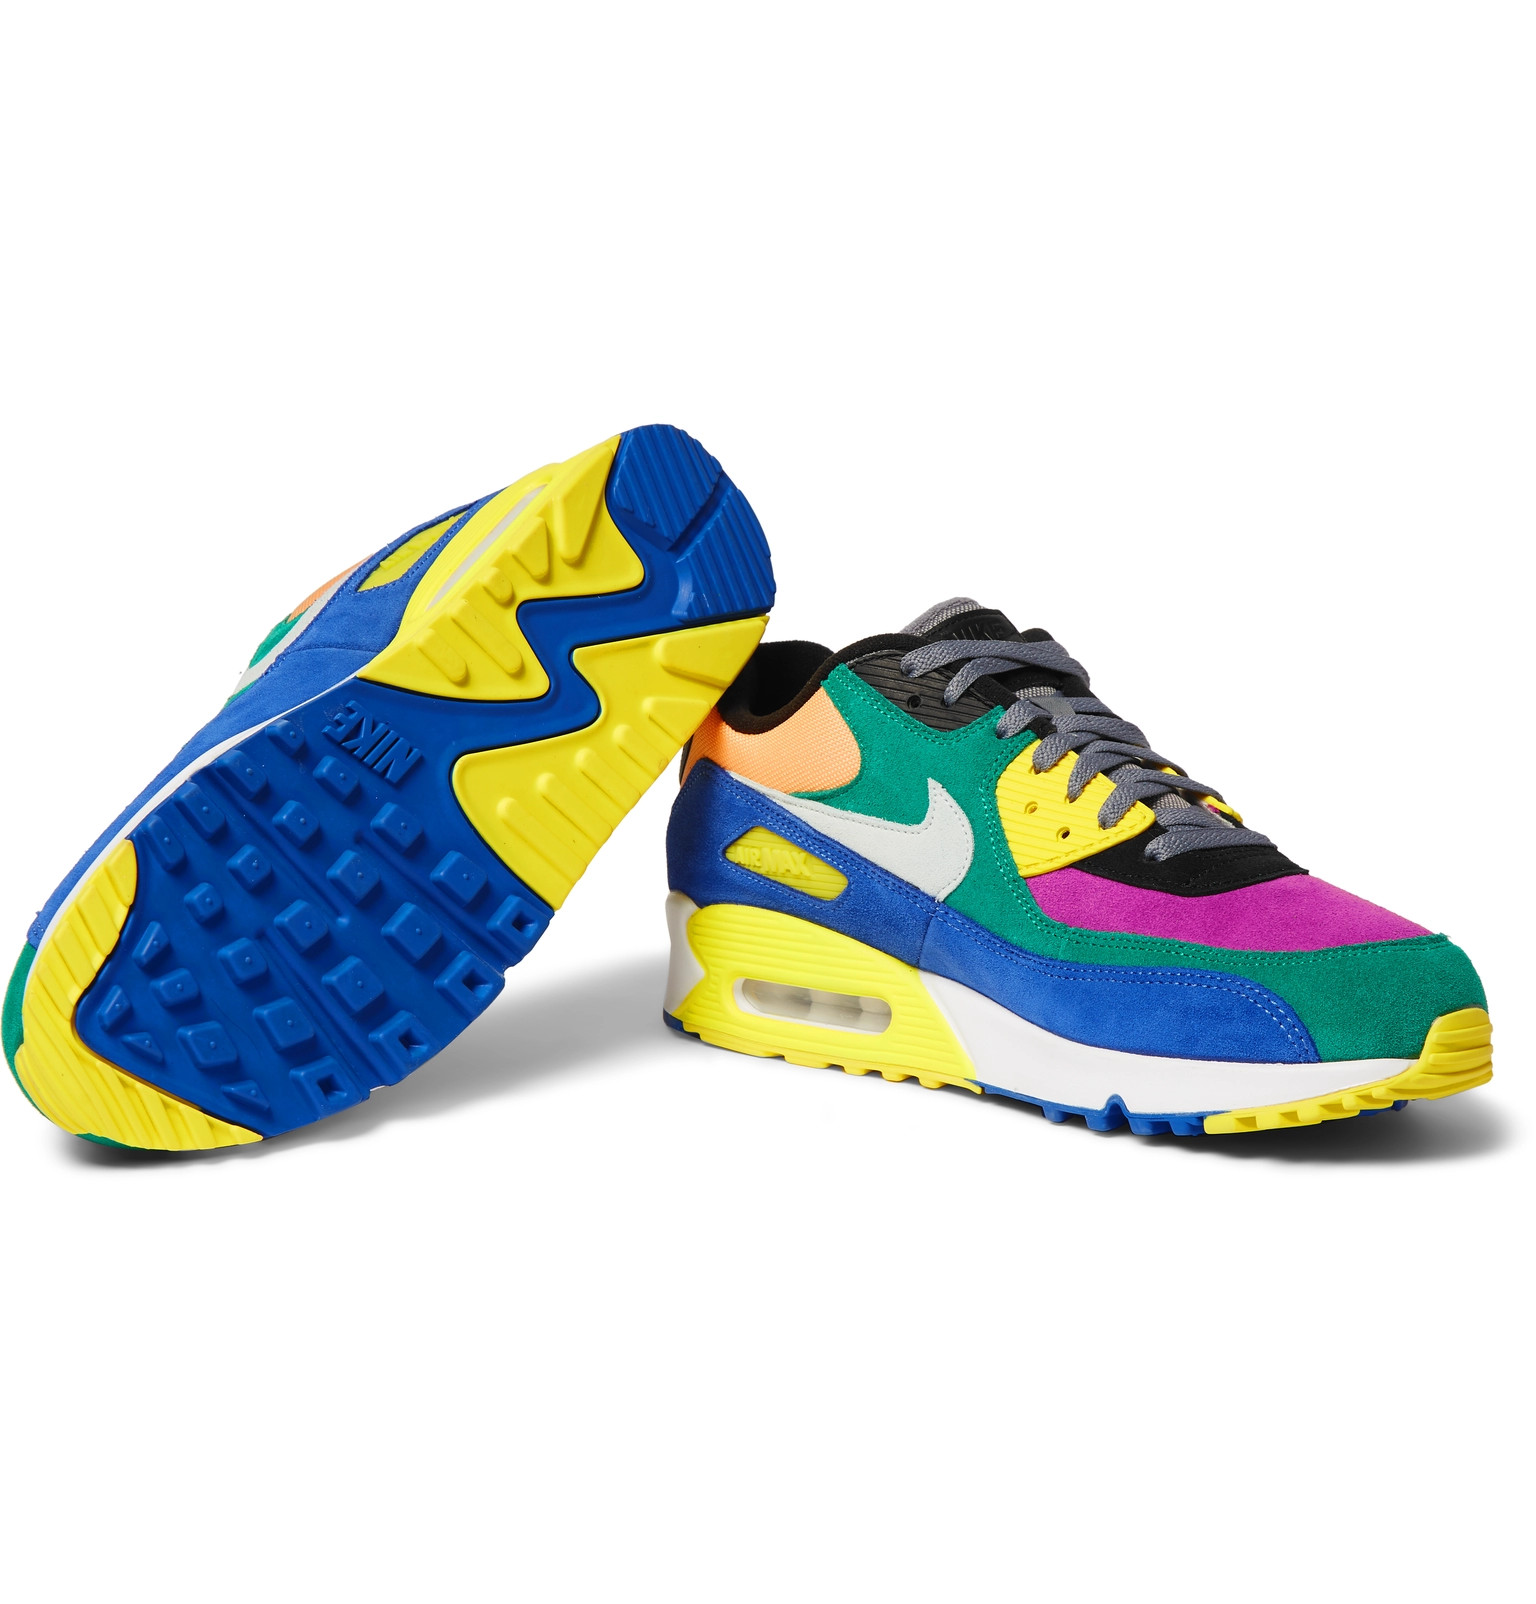 Nike Air Max 90 QS Viotech 2.0 Suede, Canvas and Mesh Sneakers